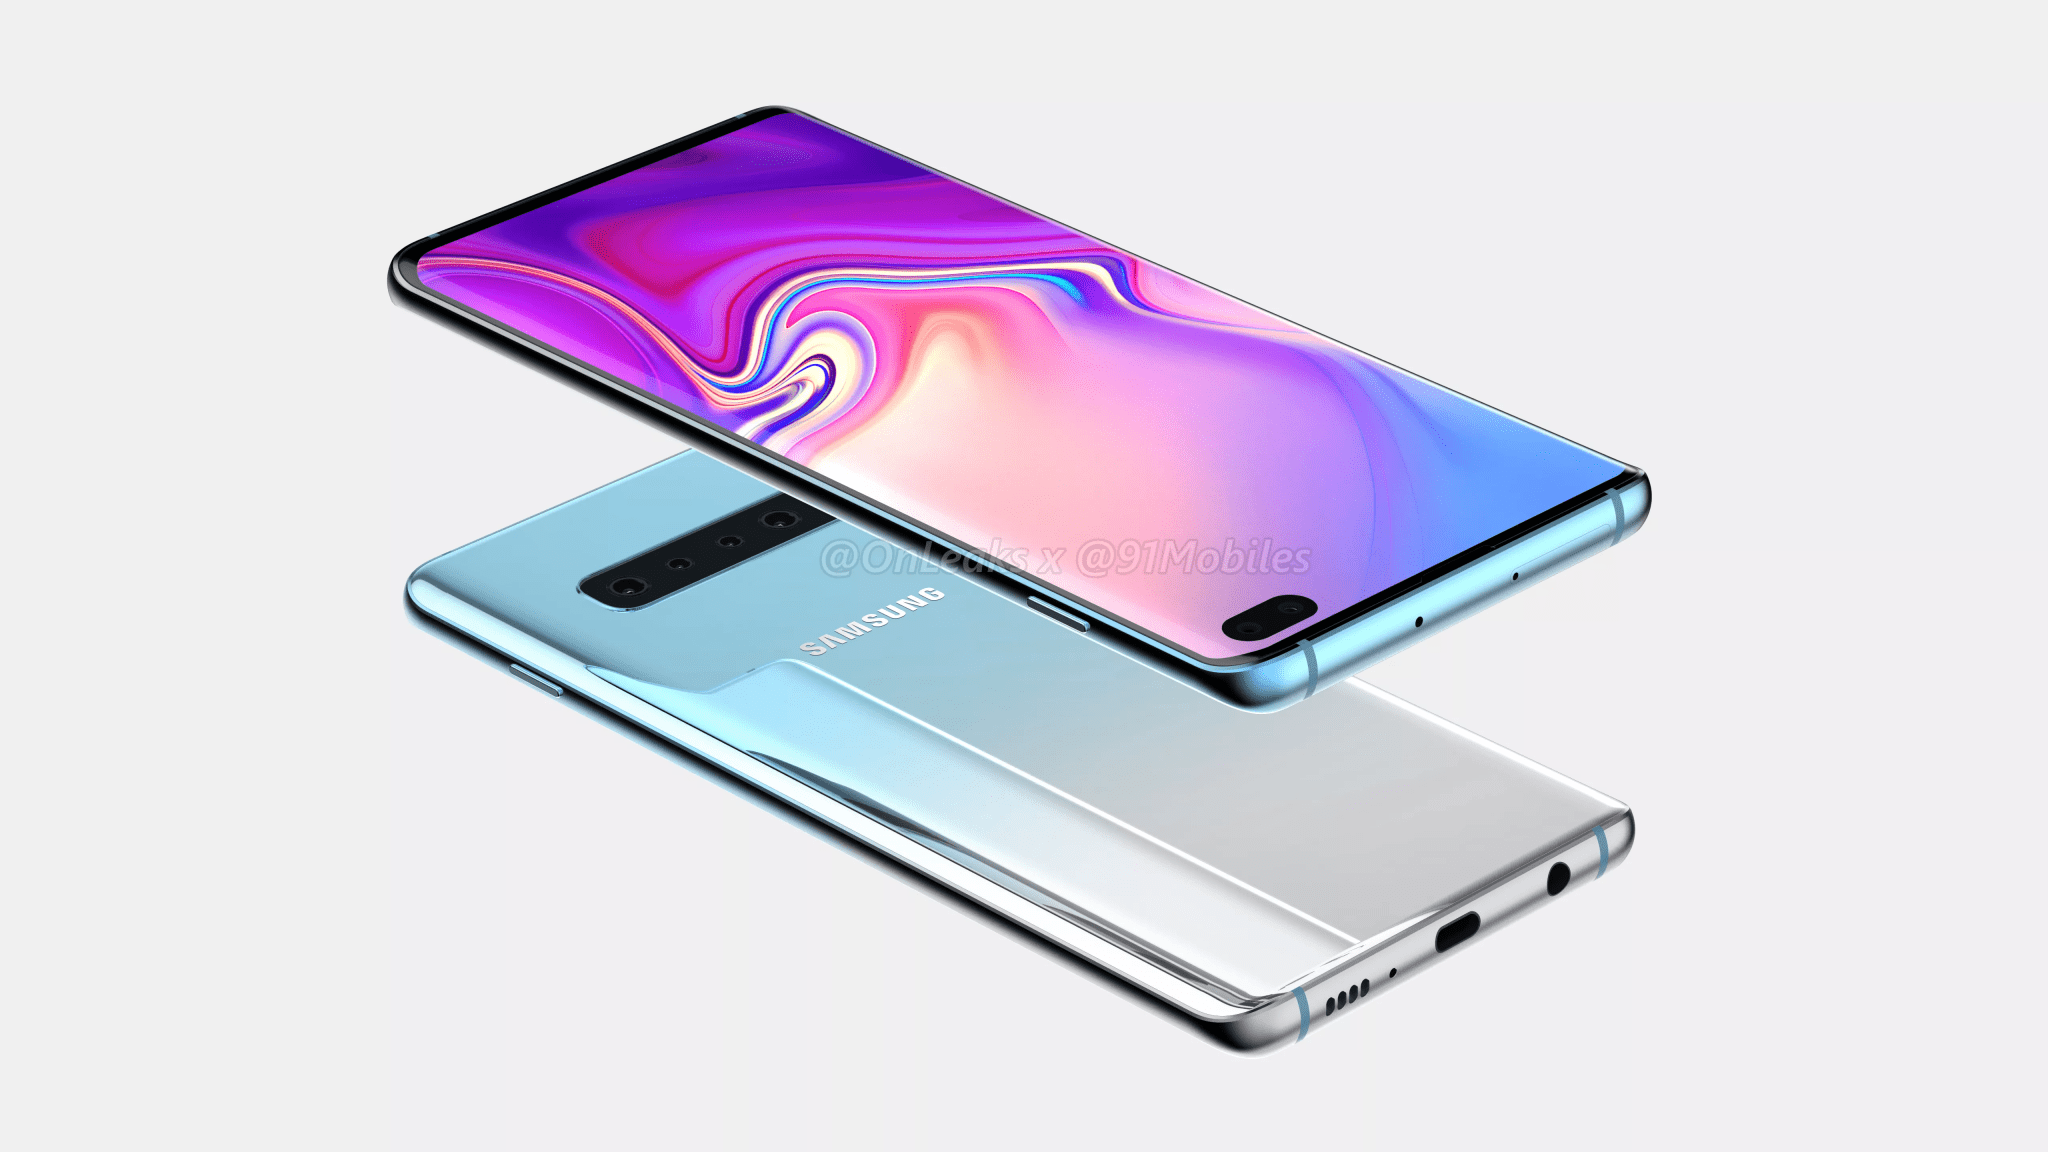 Samsung Galaxy S10 Plus CAD Renders reveal the design from every angle